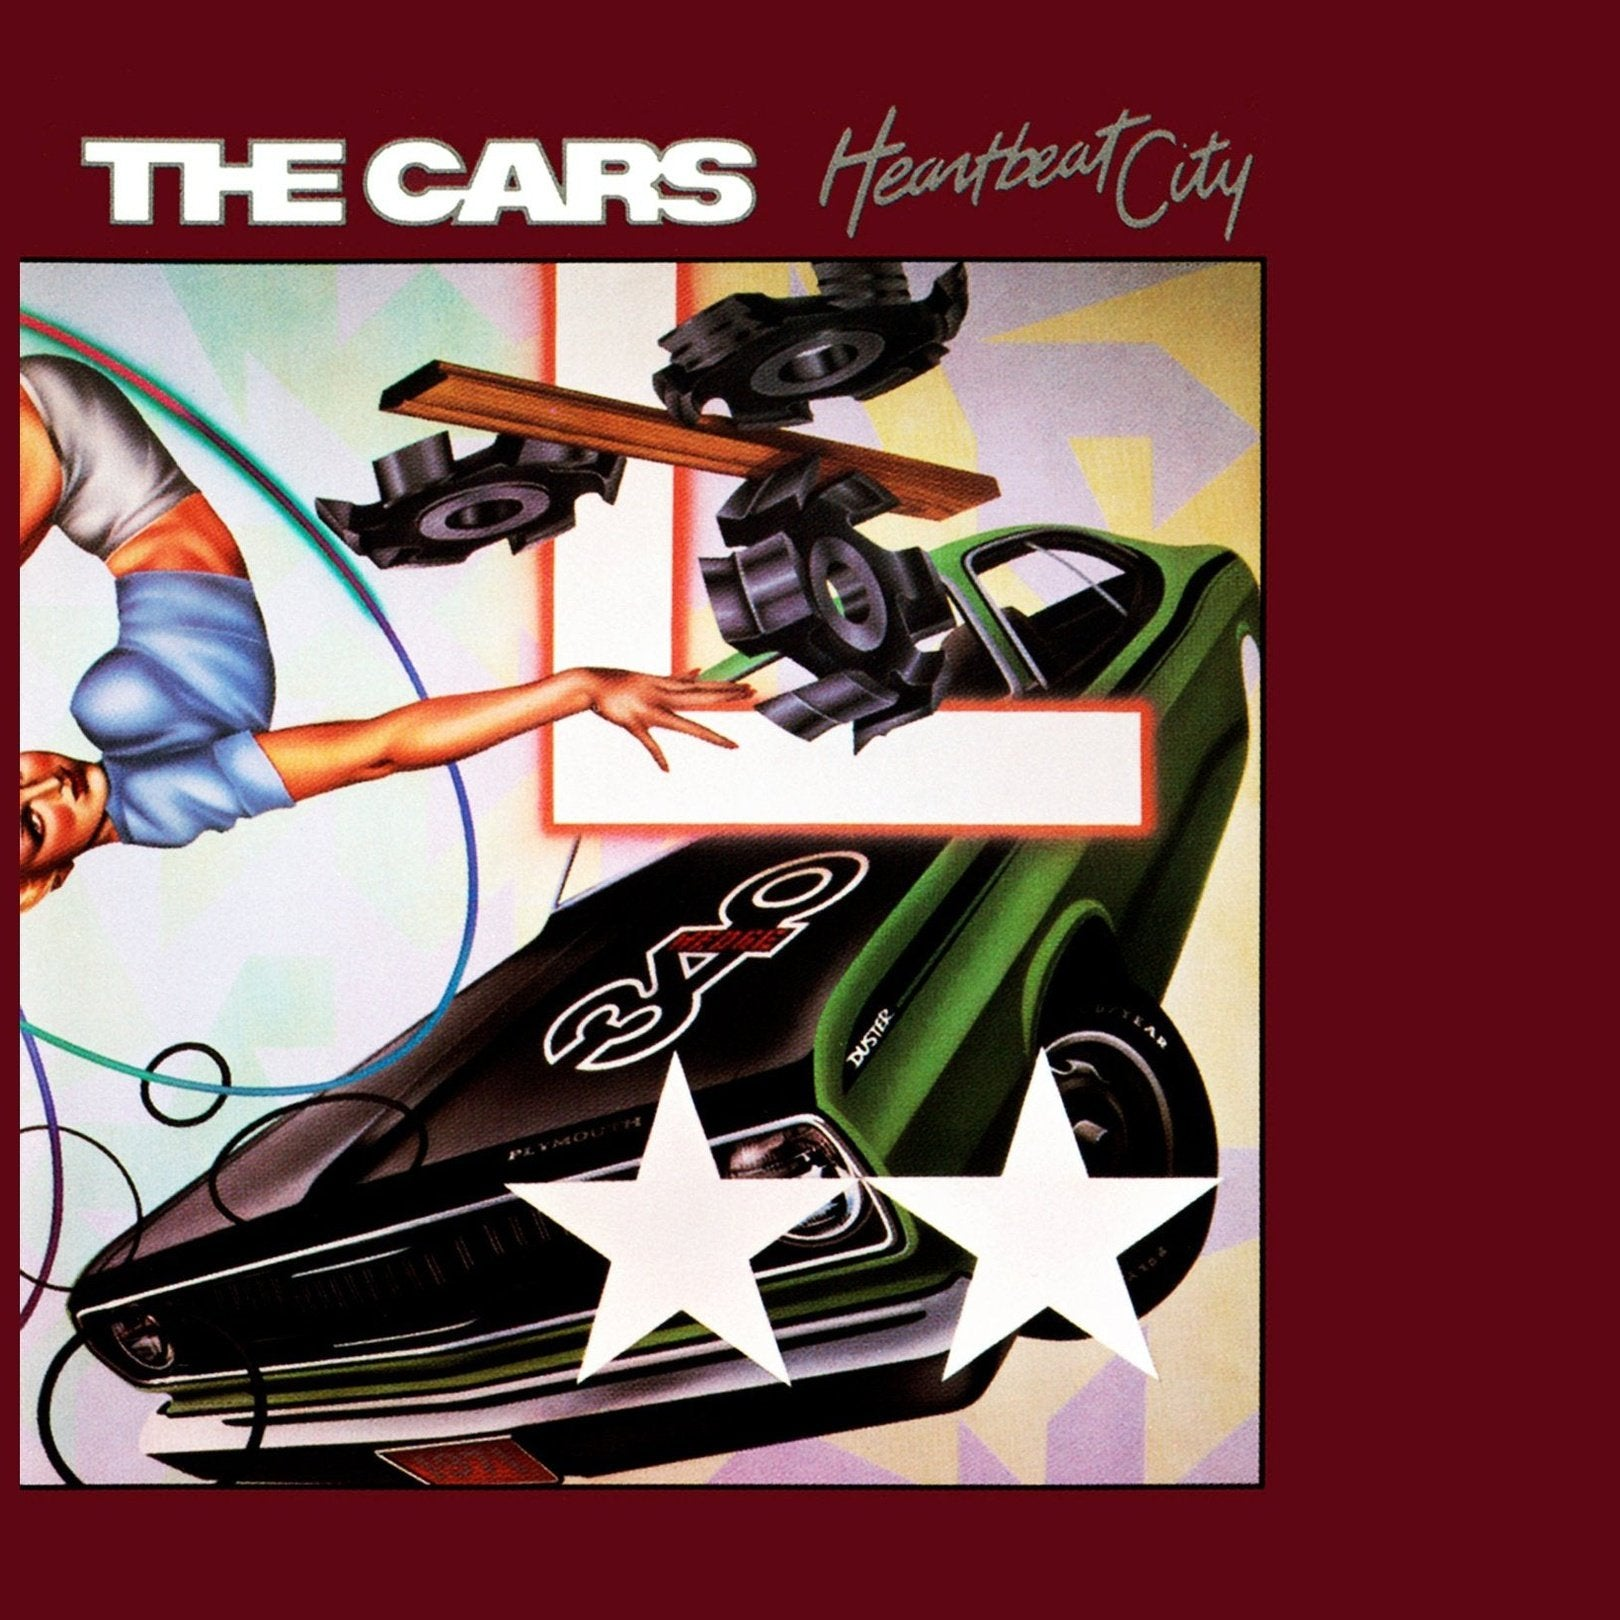 Cars - The Cars - Heartbeat City - Cd